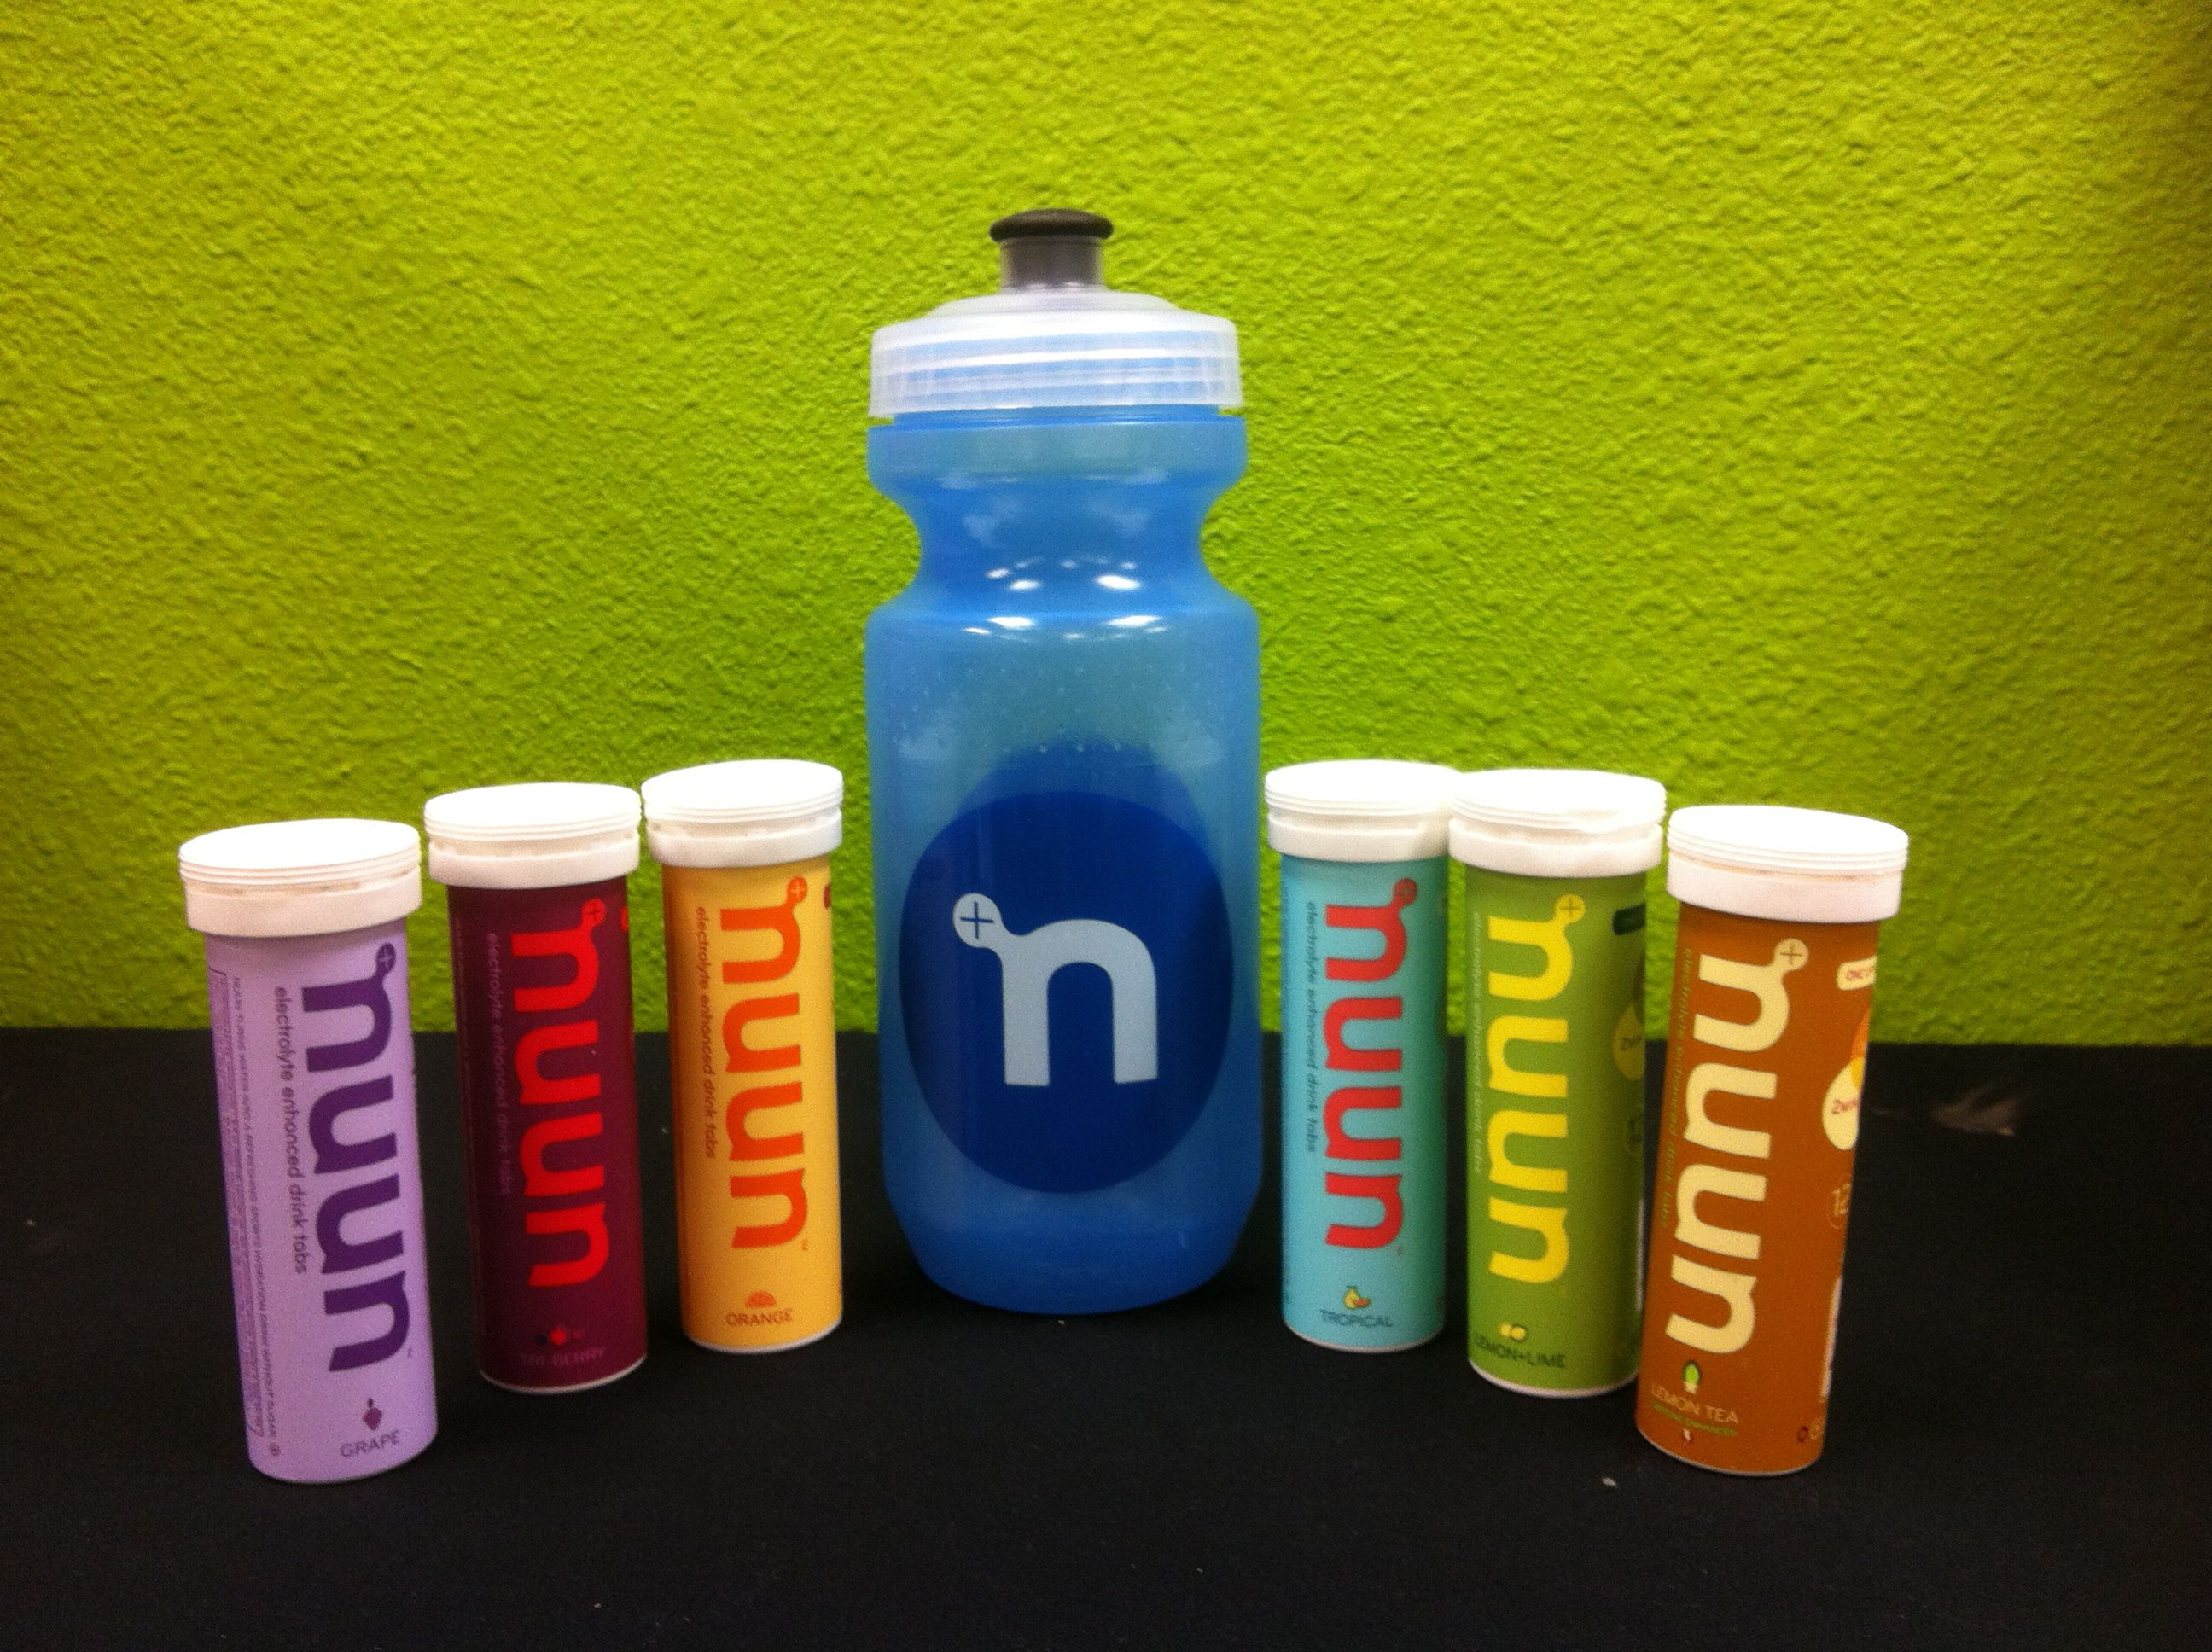 Replenish electrolytes with Nuun! Delicious flavors such as Strawberry Lemonade, Fruit Punch, Tropical, Lemon Tea, & many more!  -Sugar free & less than 6 calories